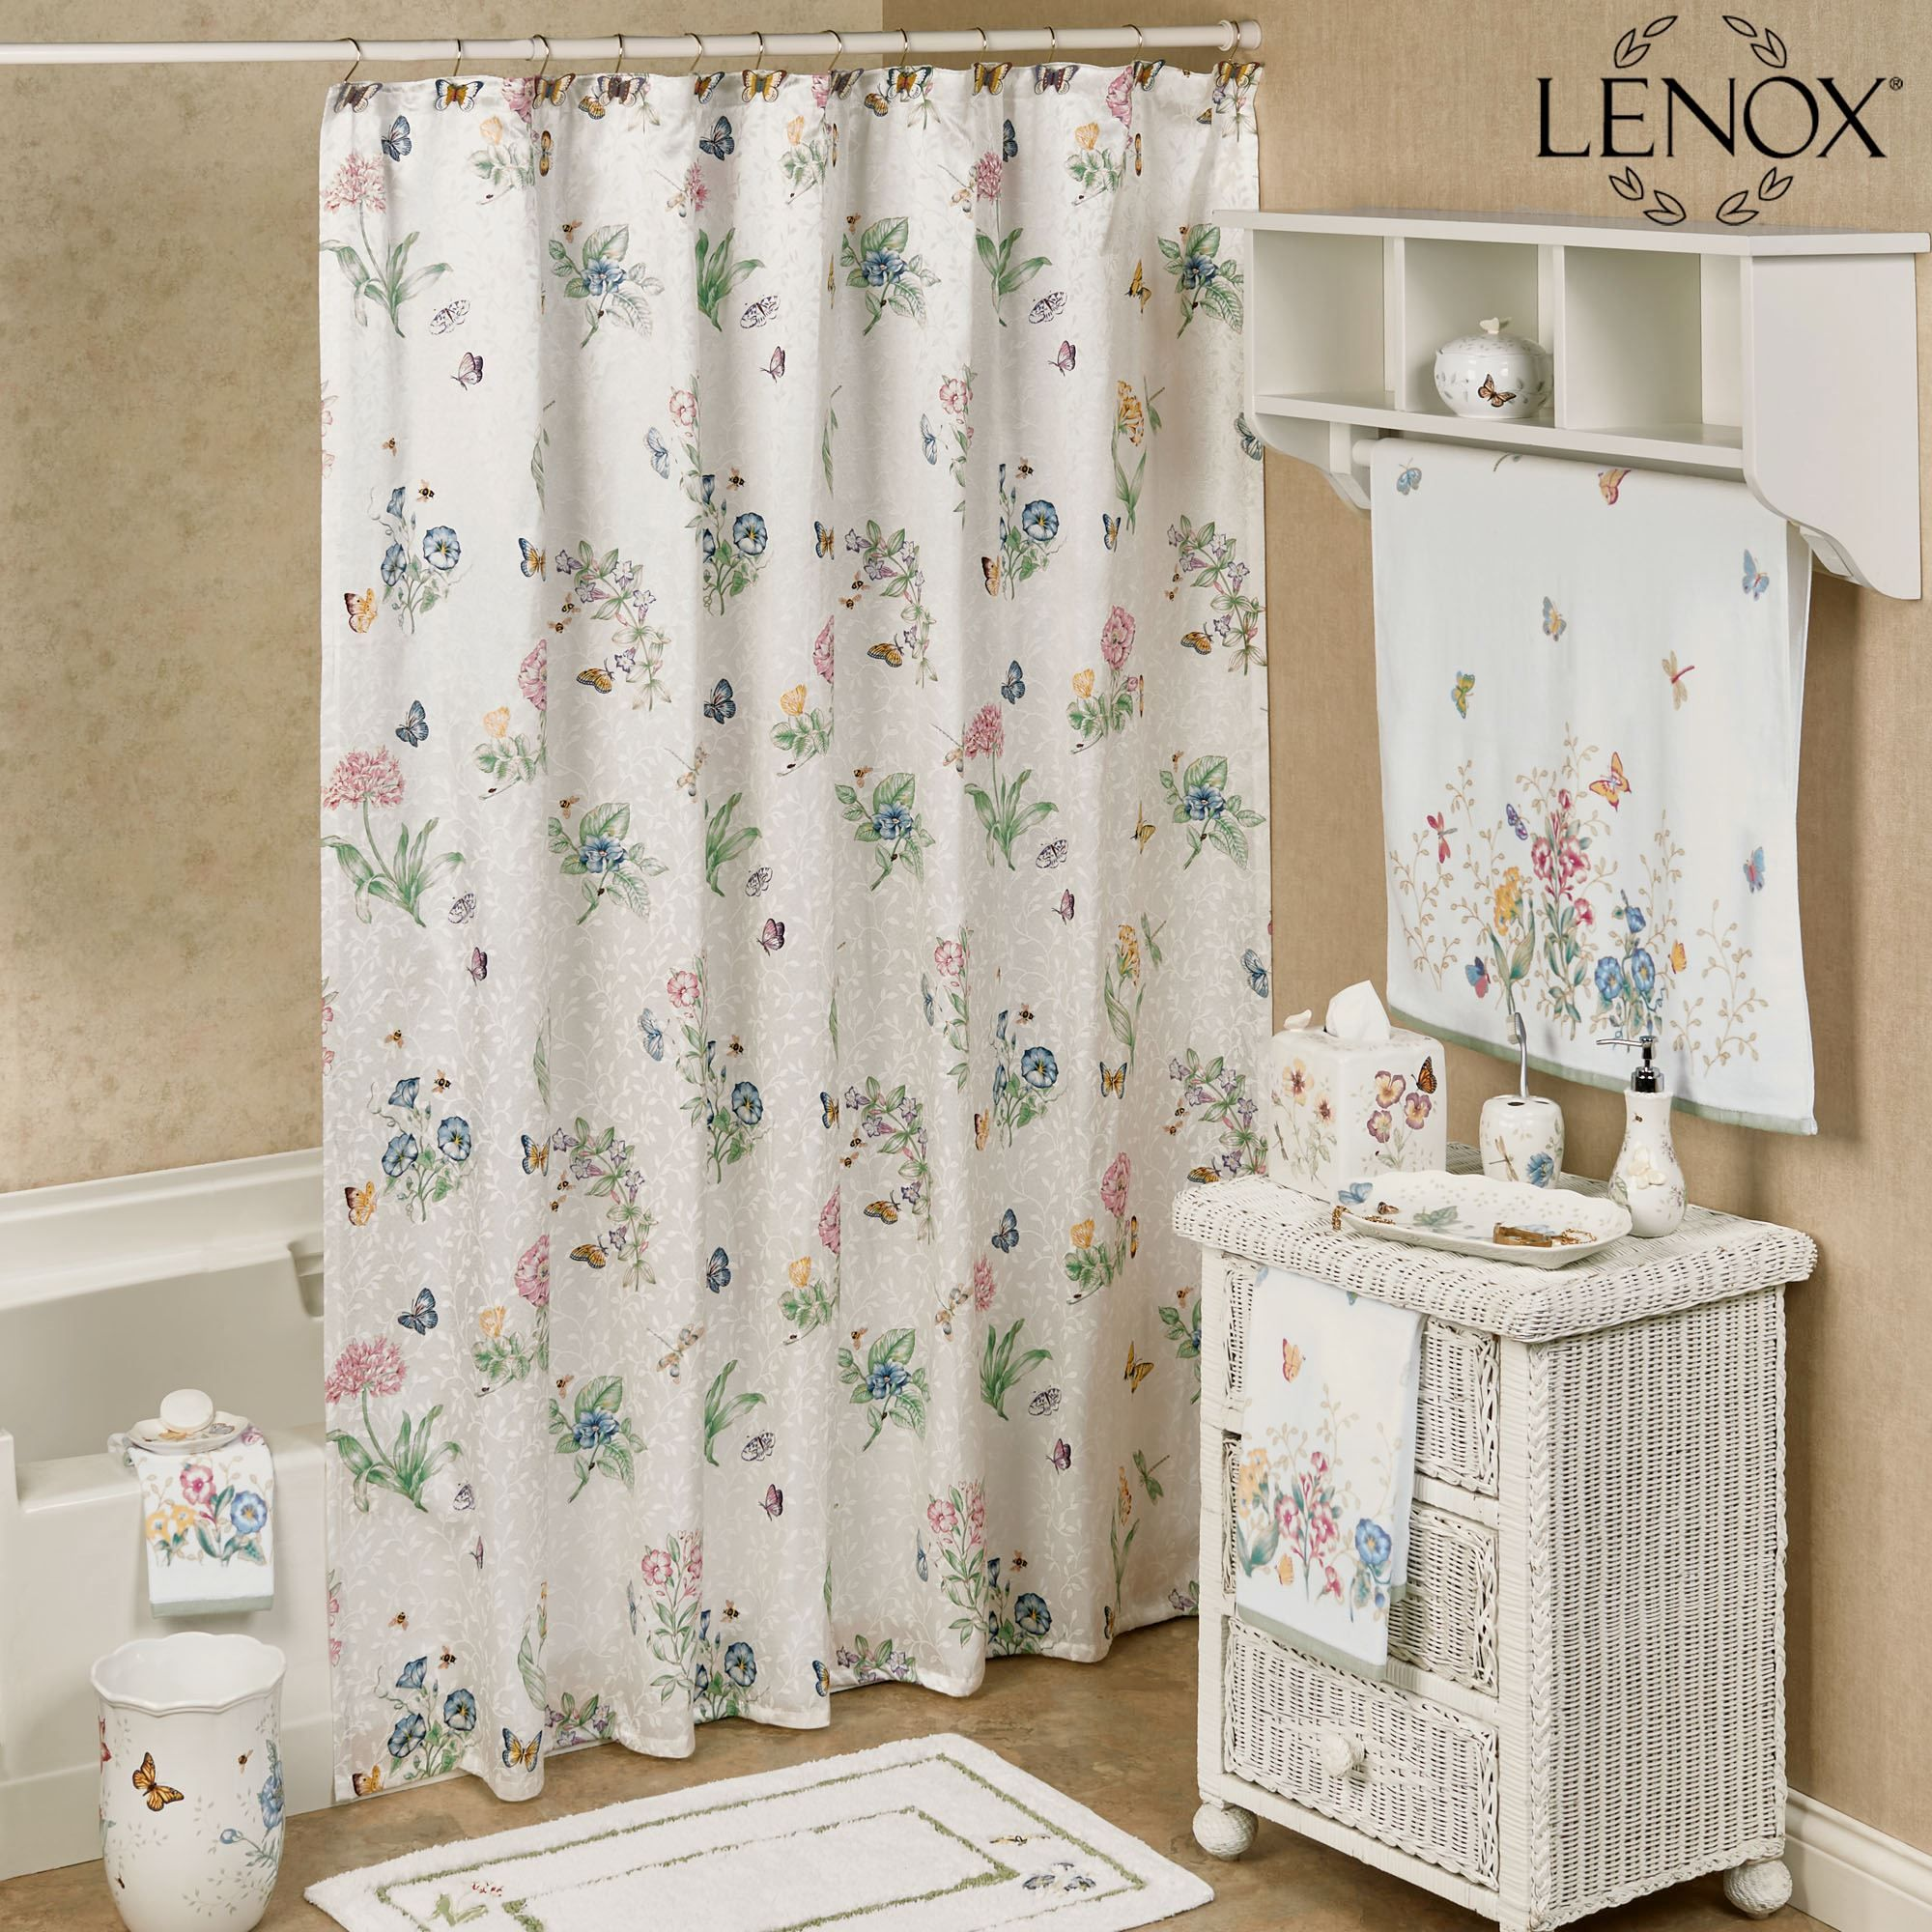 Awesome Ideas About Shower Curtain For Your Bathroom